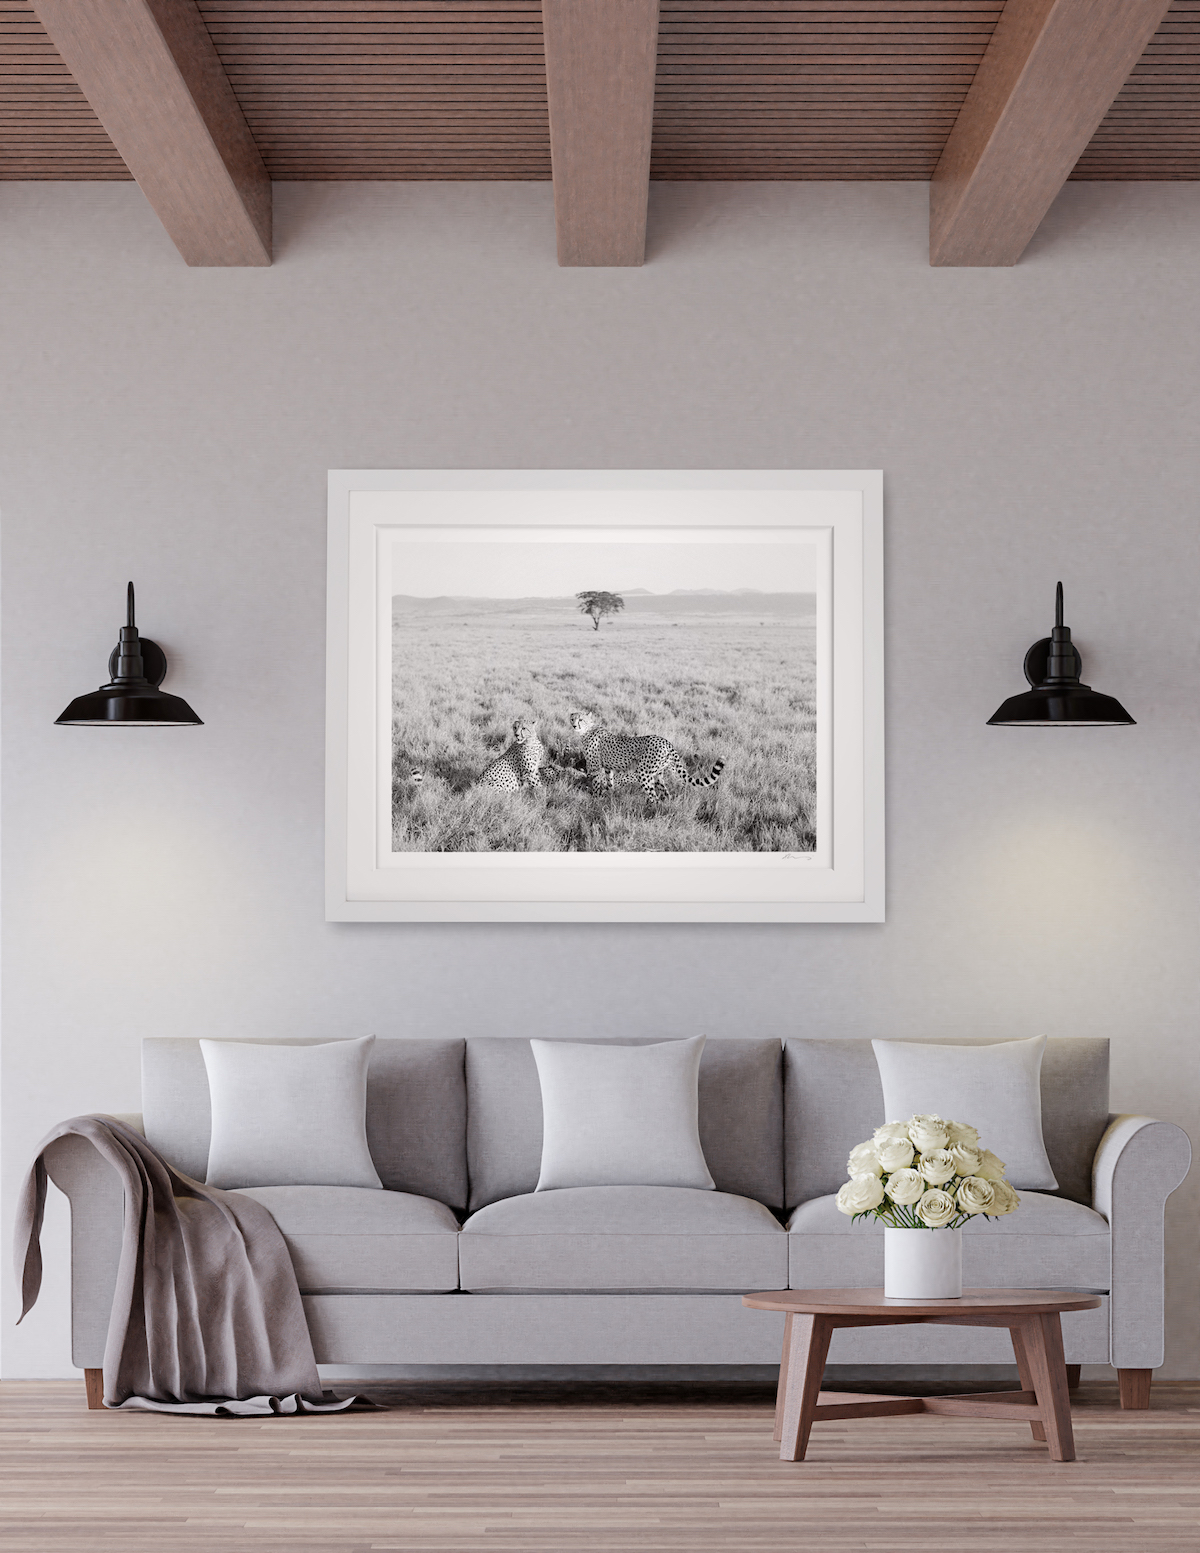 wildlife art living room interior